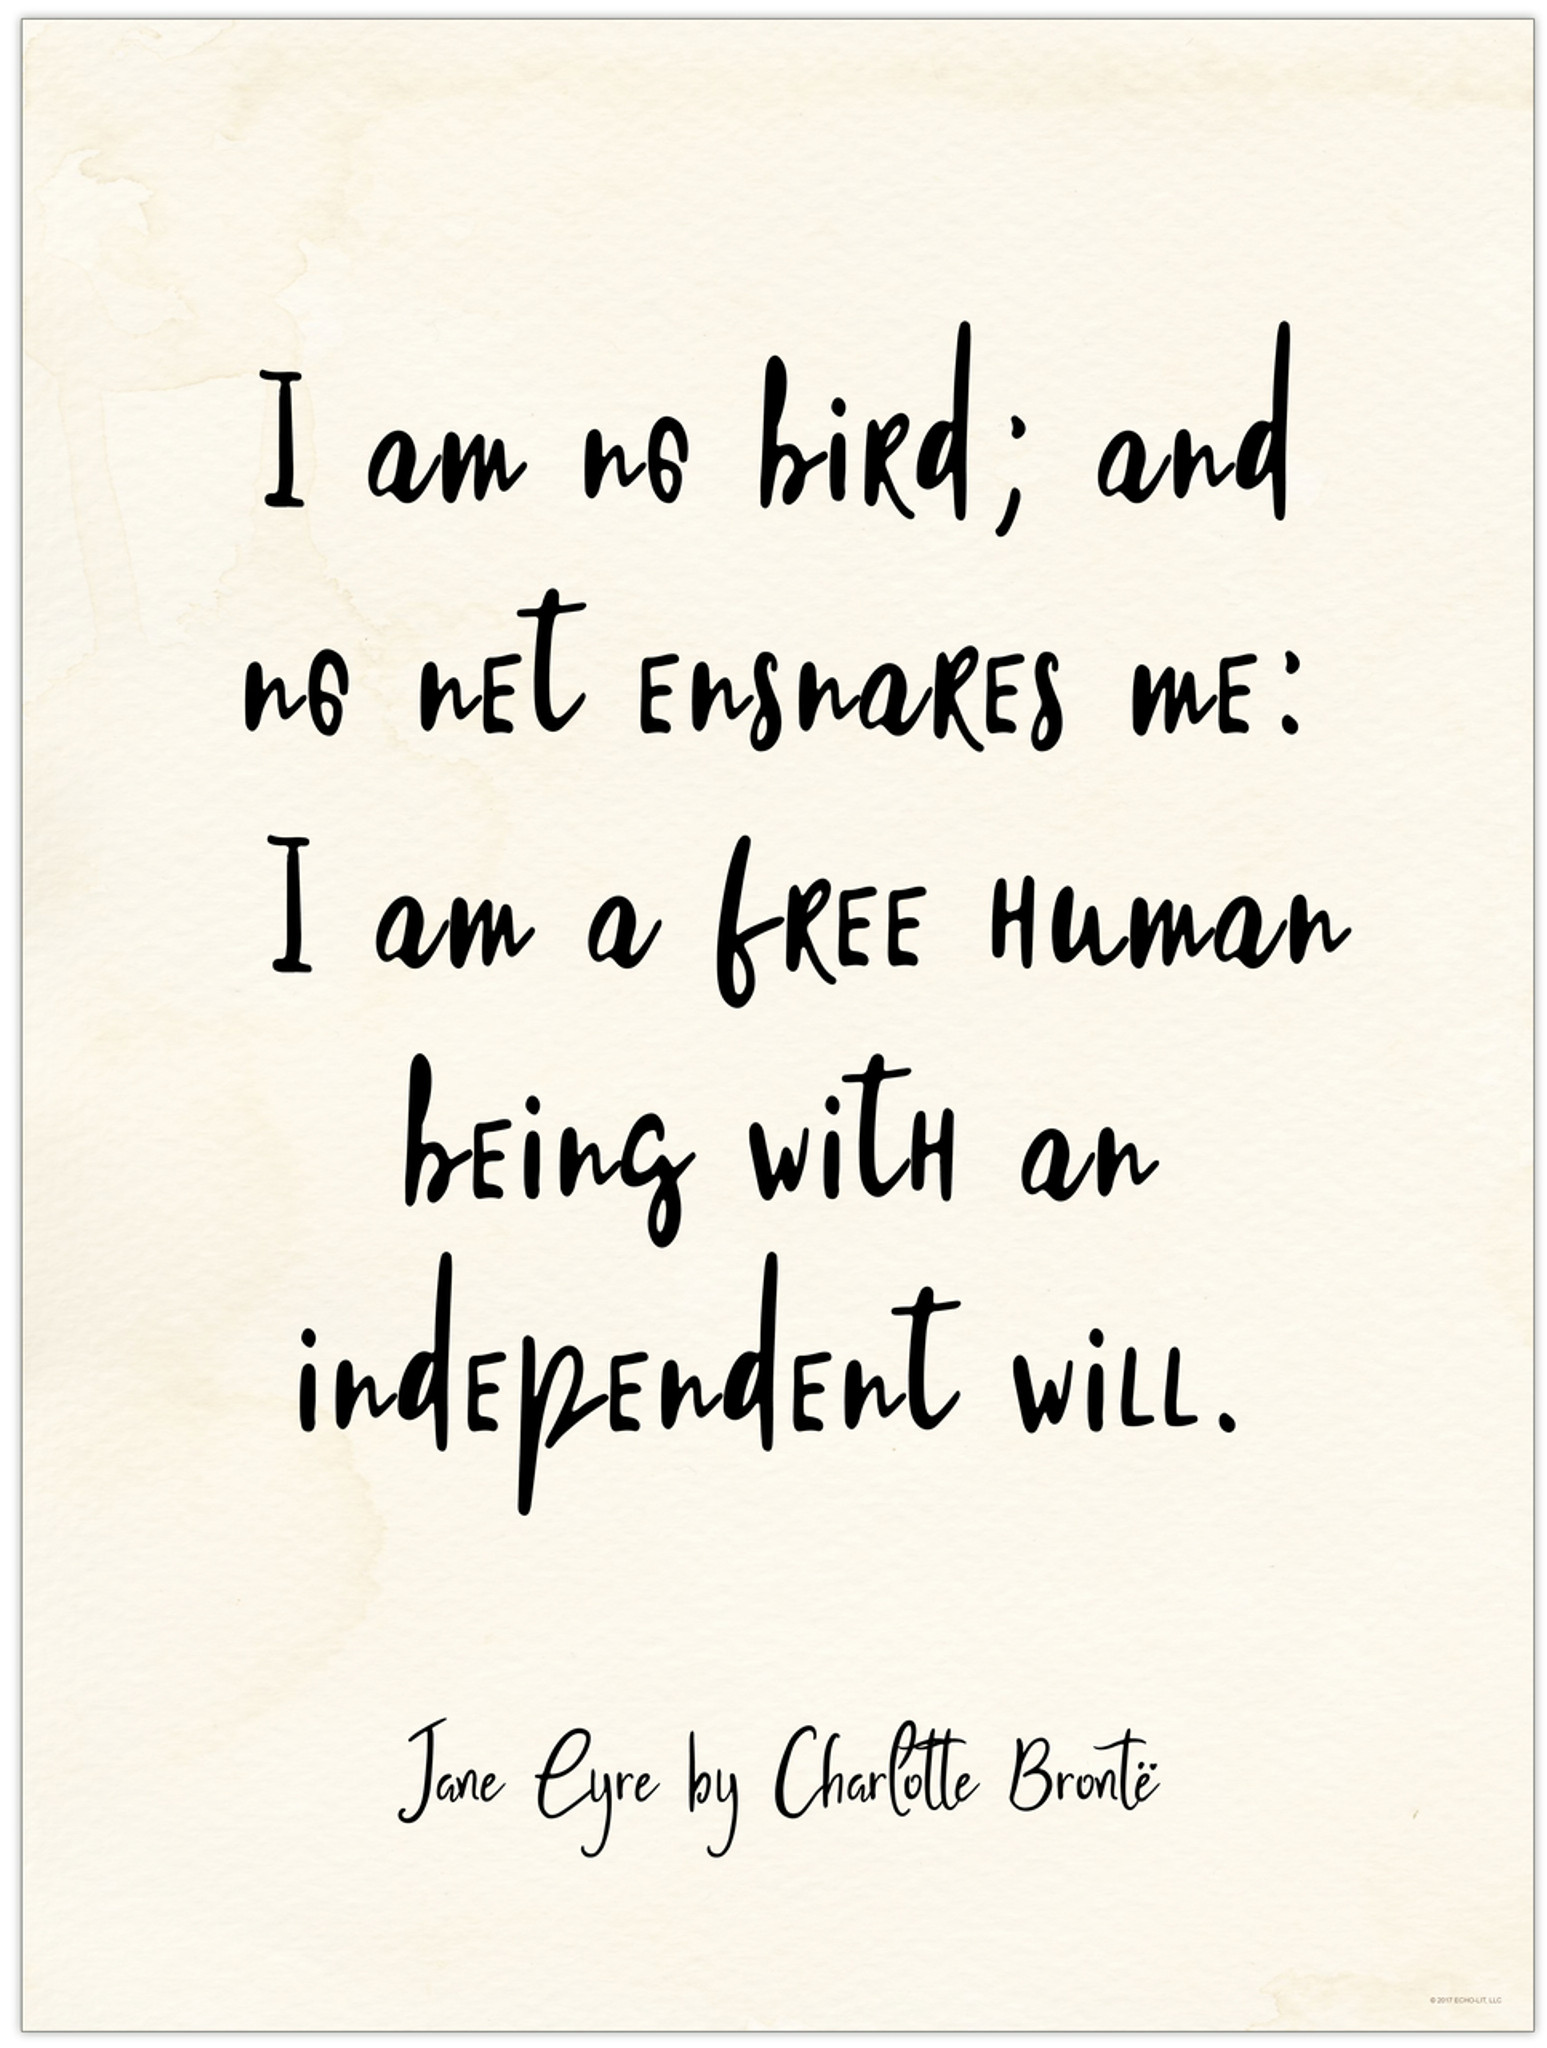 Quotes Jane Eyre Independent Will  Jane Eyre Charlotte Bronte Quote Poster For